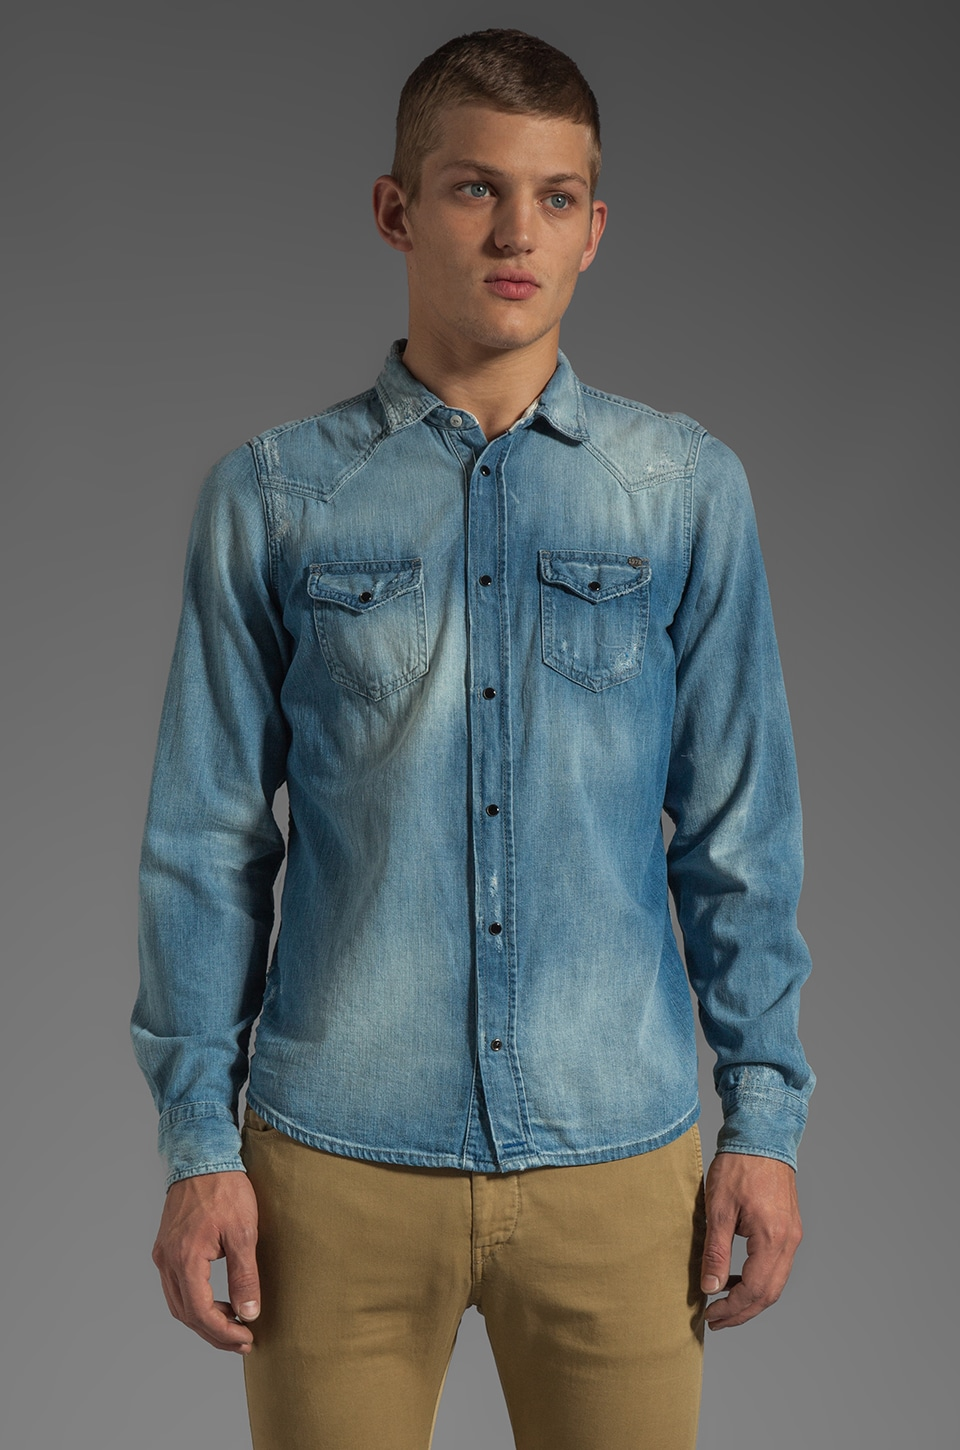 Diesel Sonora Shirt in Denim